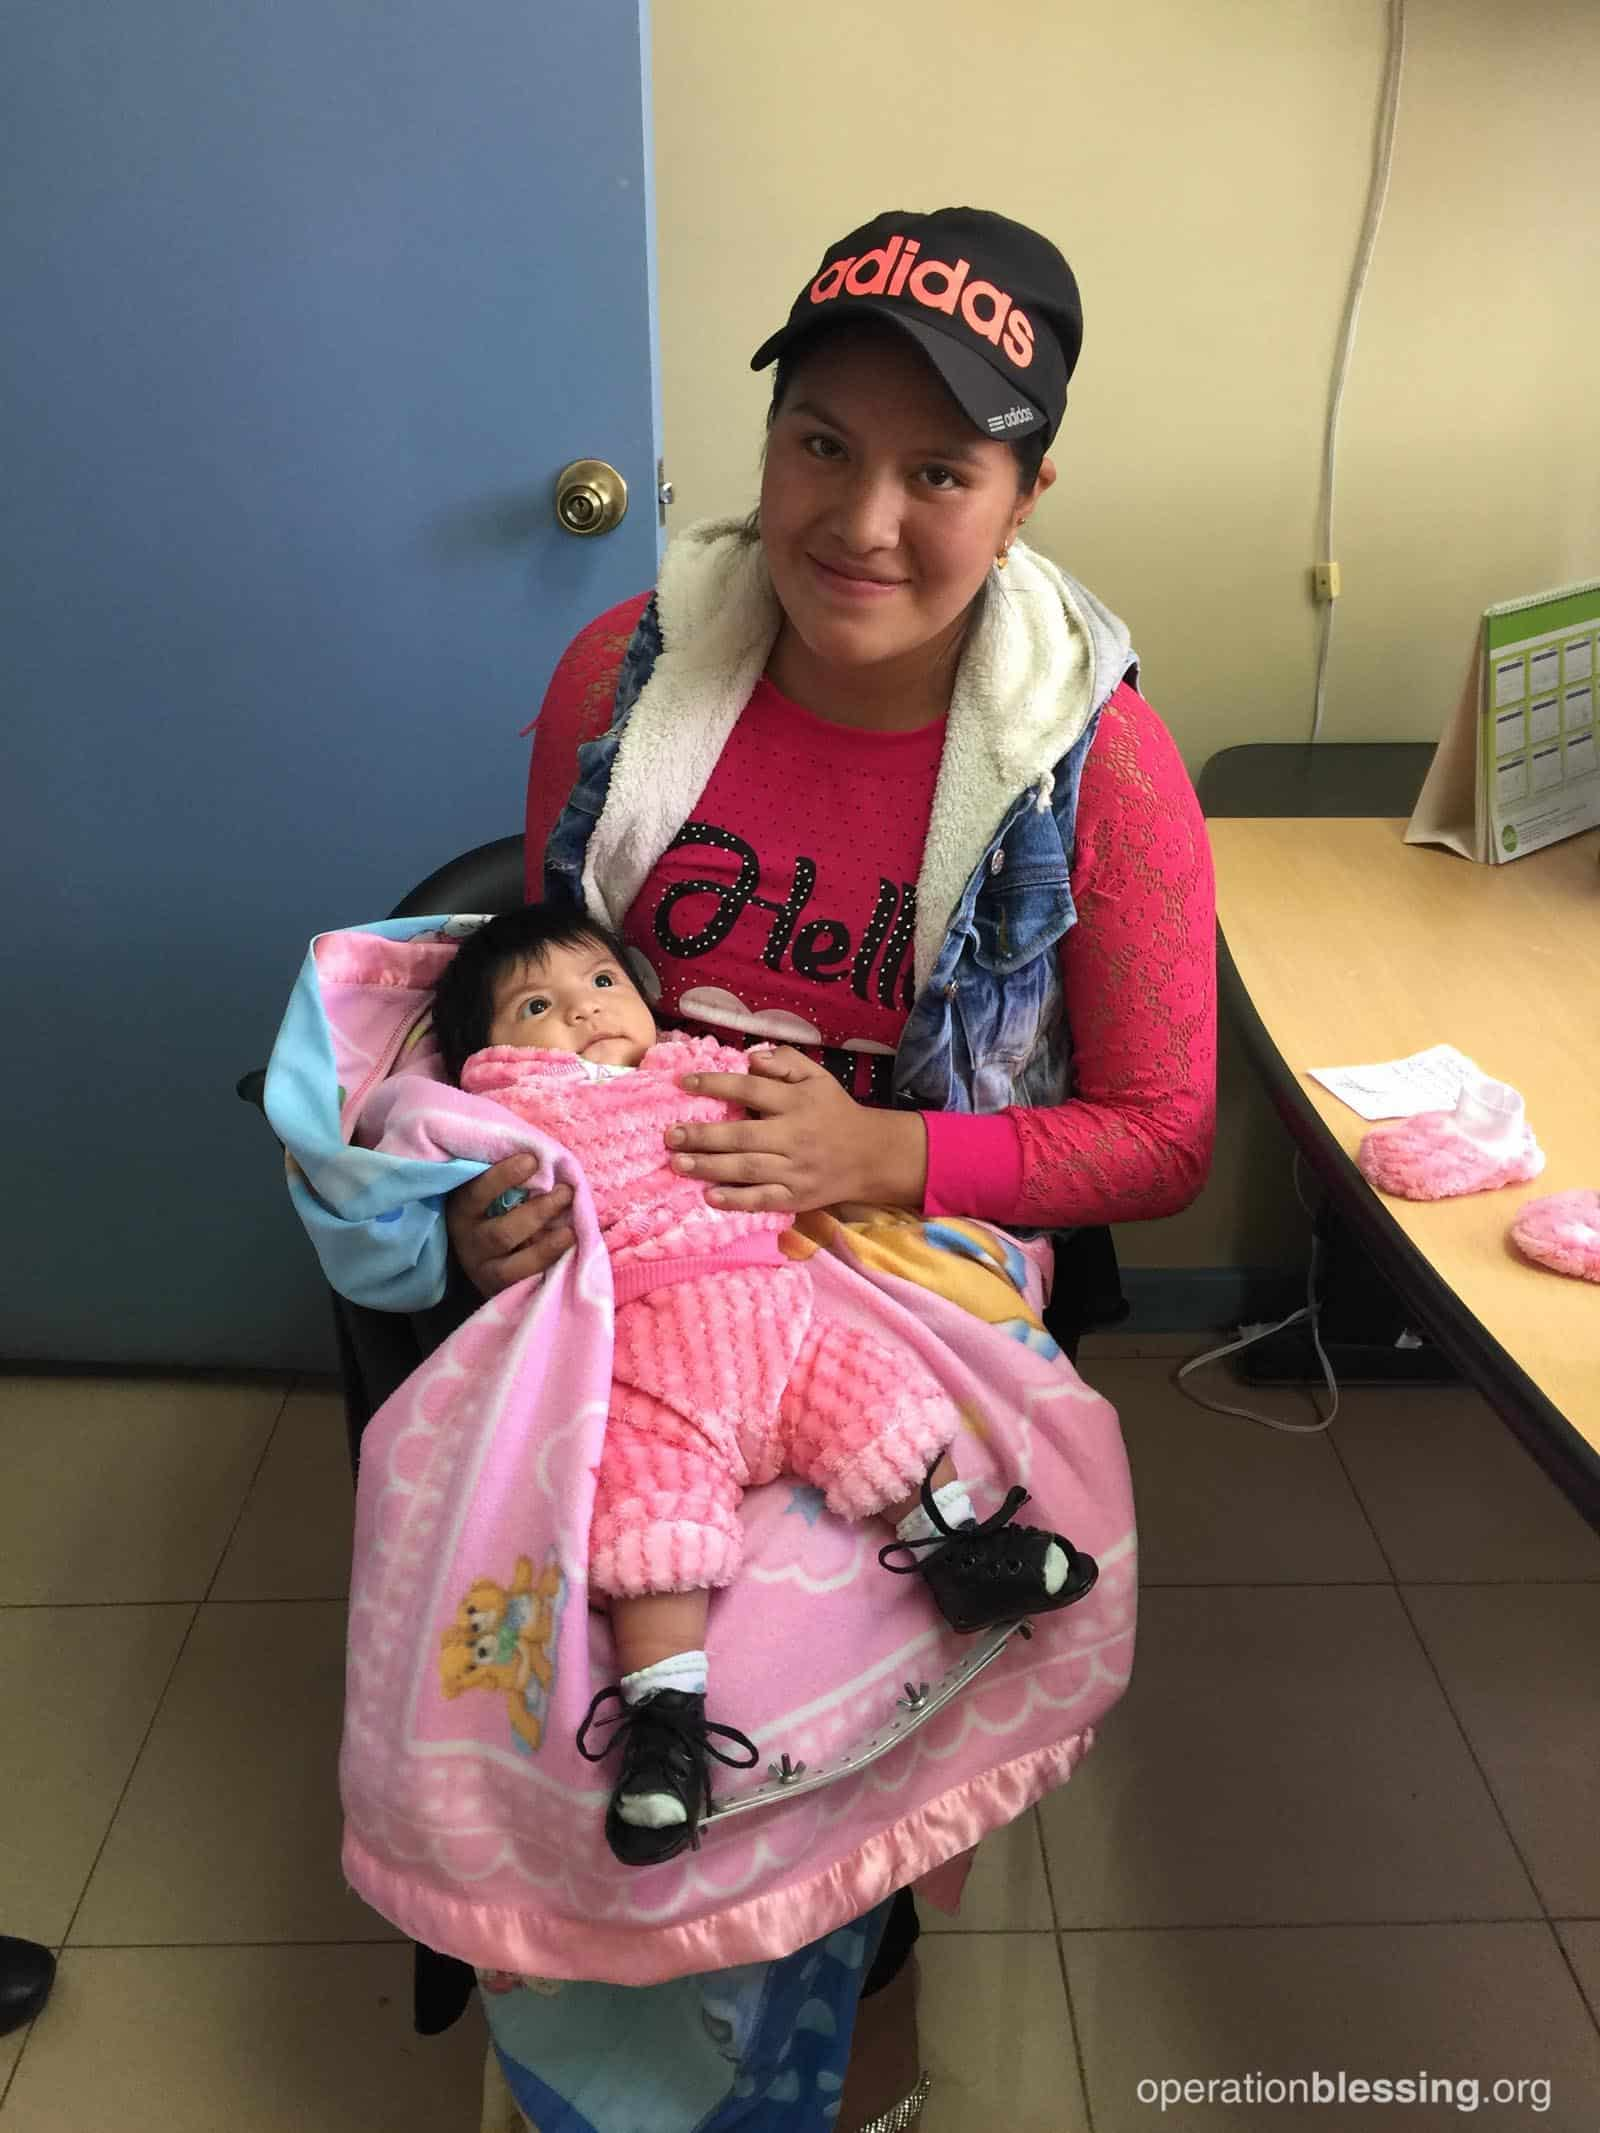 Belen holds little Yazmin with a smile on her face. One day, this little baby will take her first steps on corrected feet!